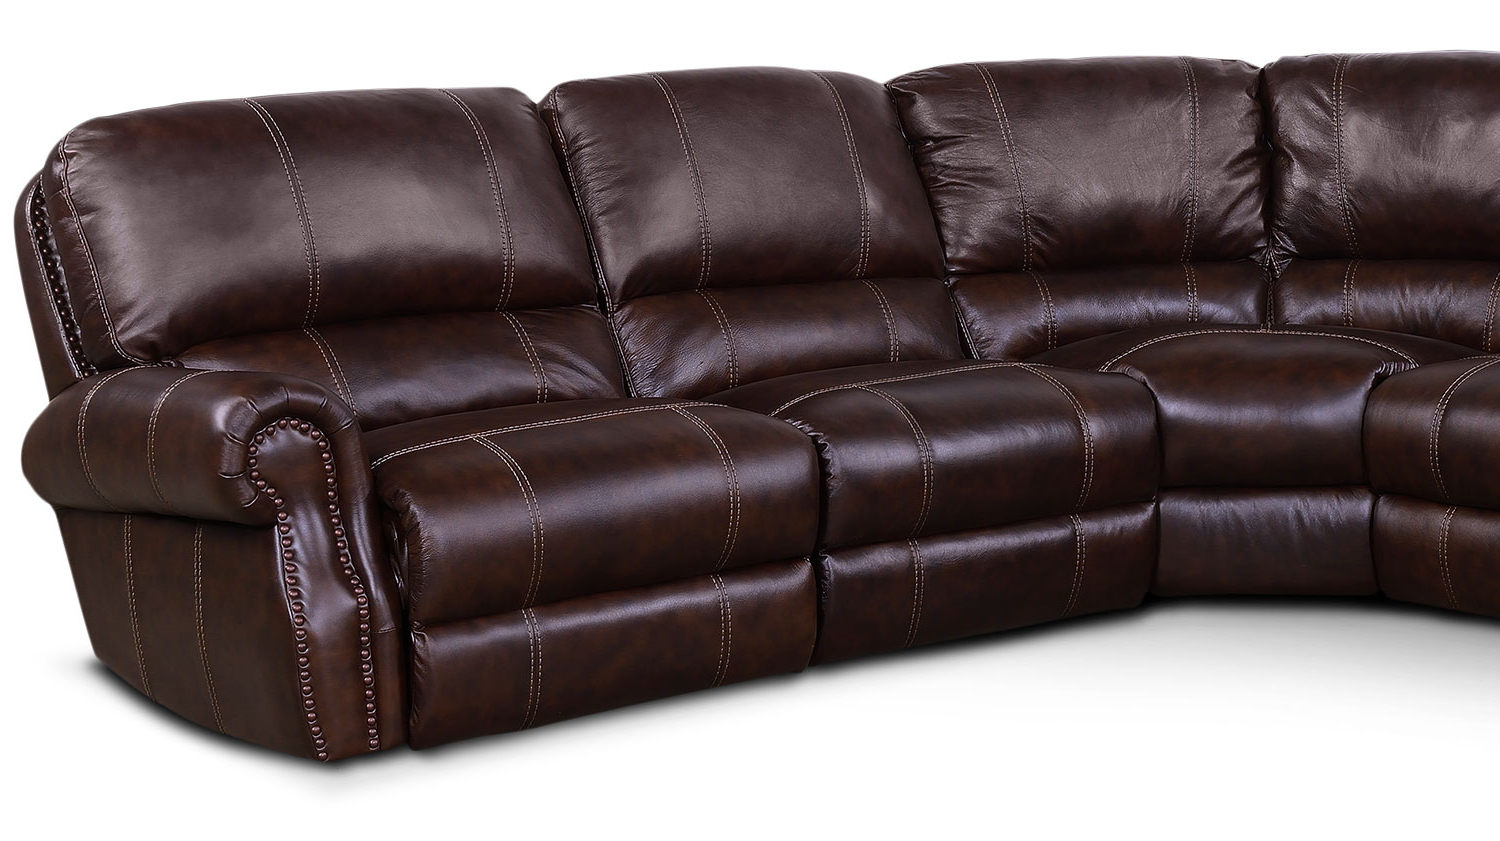 Norfolk Chocolate 3 Piece Sectionals With Raf Chaise For Well Known Dartmouth 6 Piece Power Reclining Sectional With 2 Reclining Seats (Gallery 18 of 20)